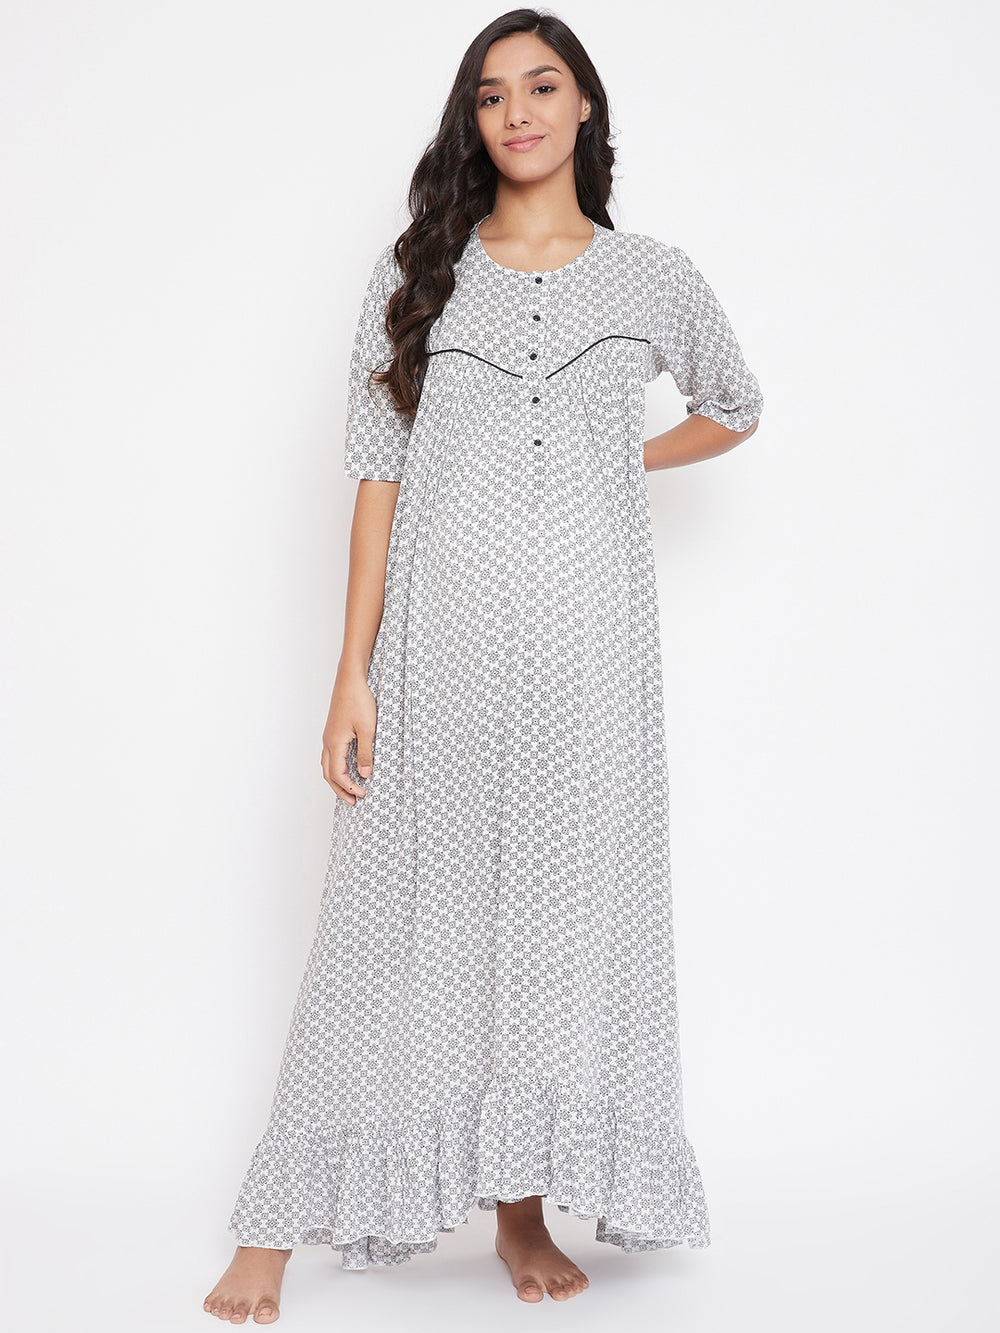 WHITE COTTON MATERNITY NIGHTDRESS WITH BUTTON PLACKET